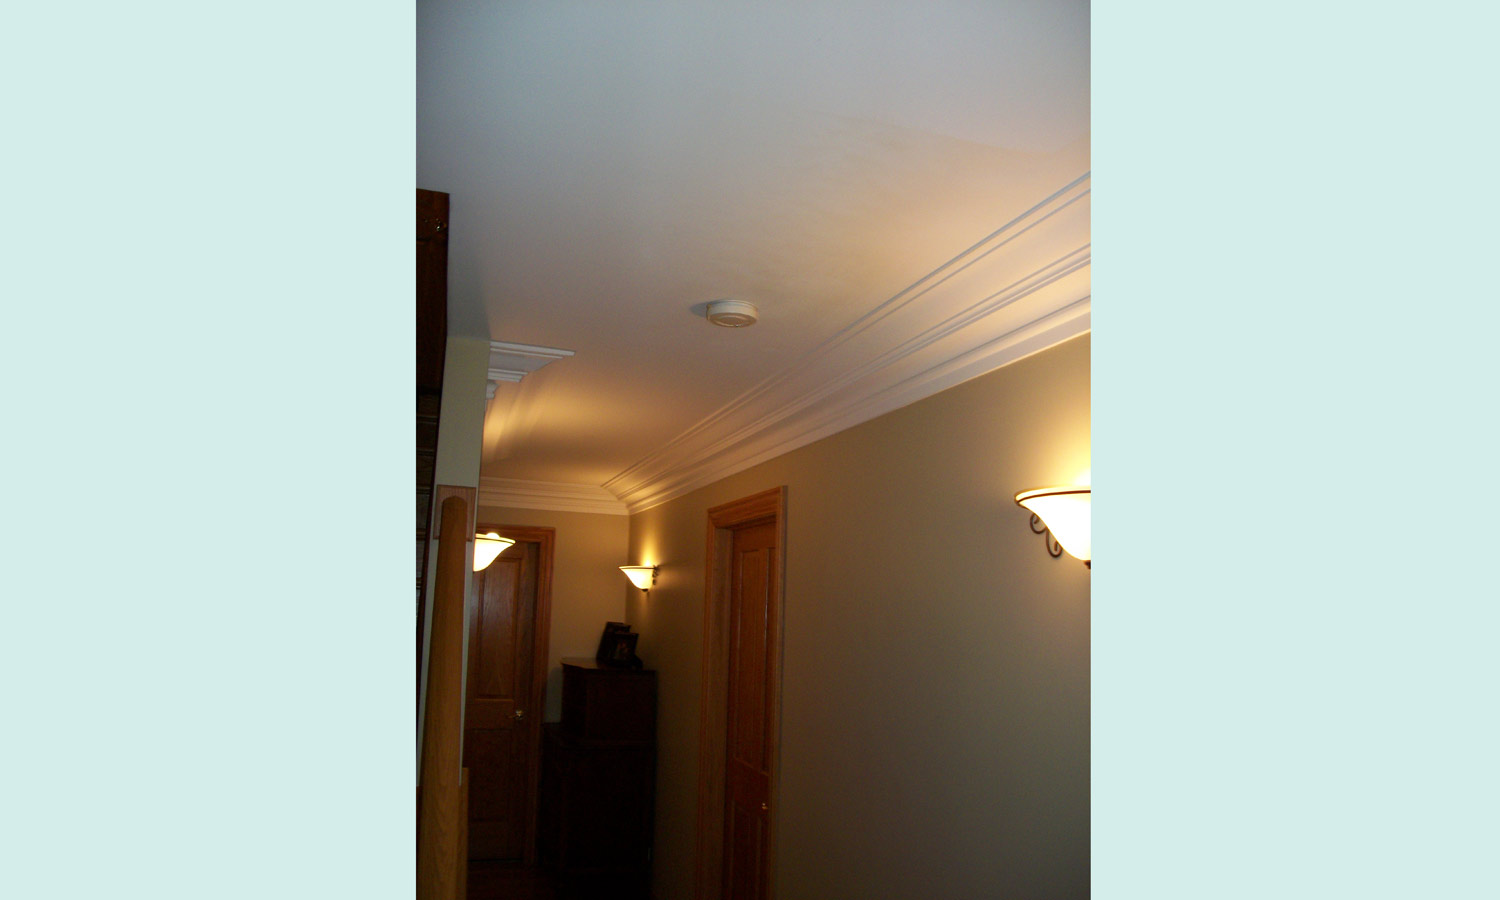 plaster-walls-ceiling-3